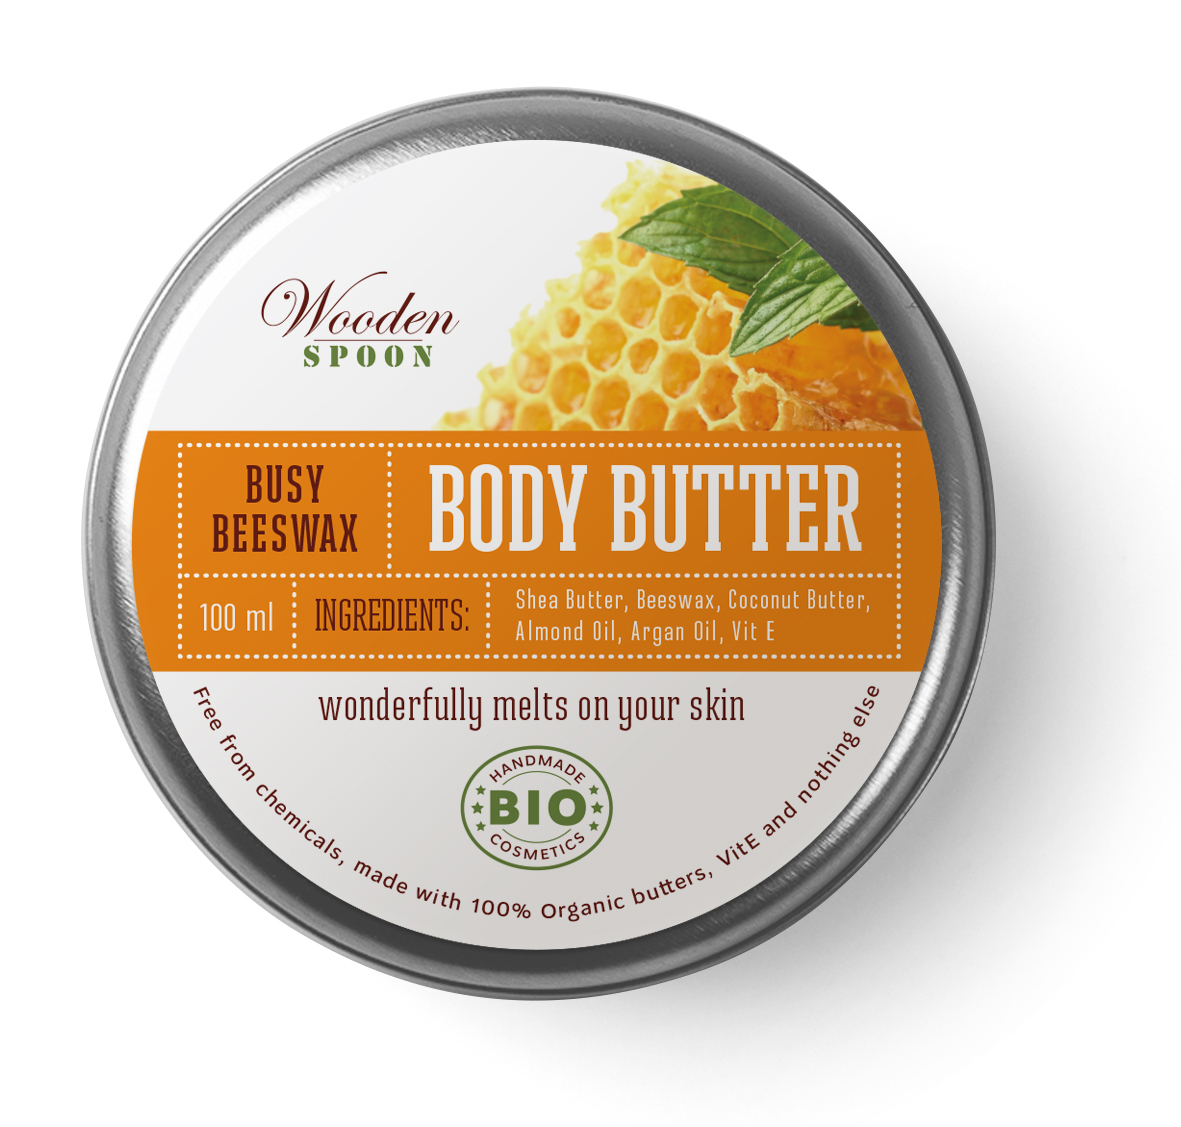 Body Butter Busy Beeswax